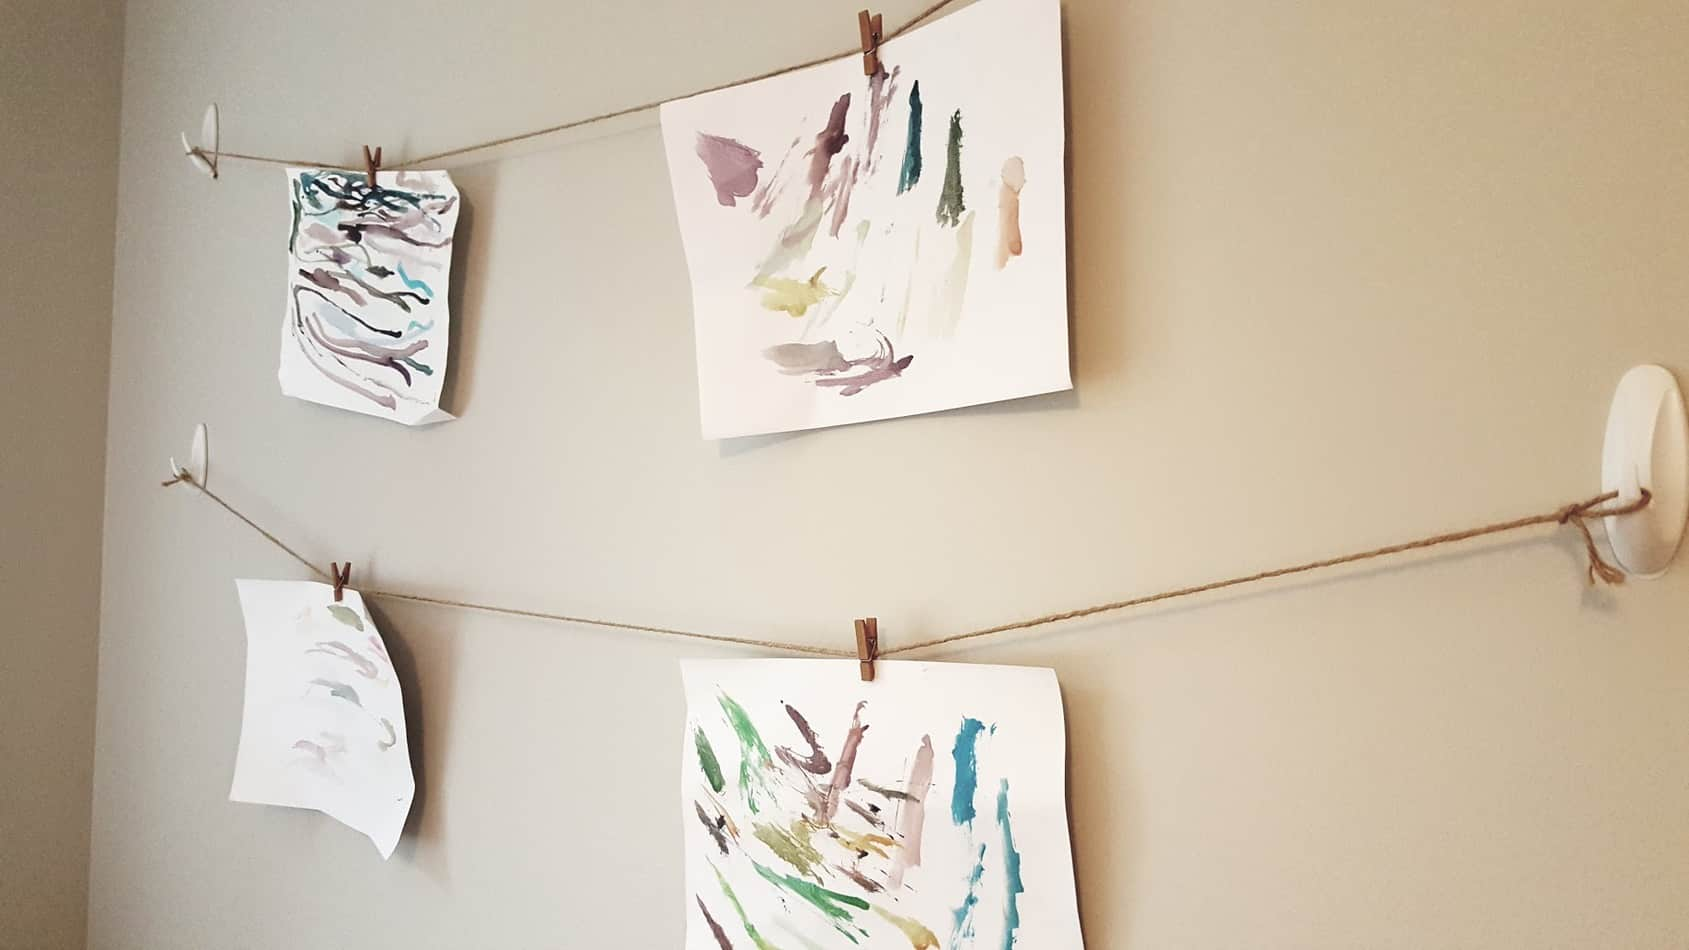 Playroom Inspiration artwork display